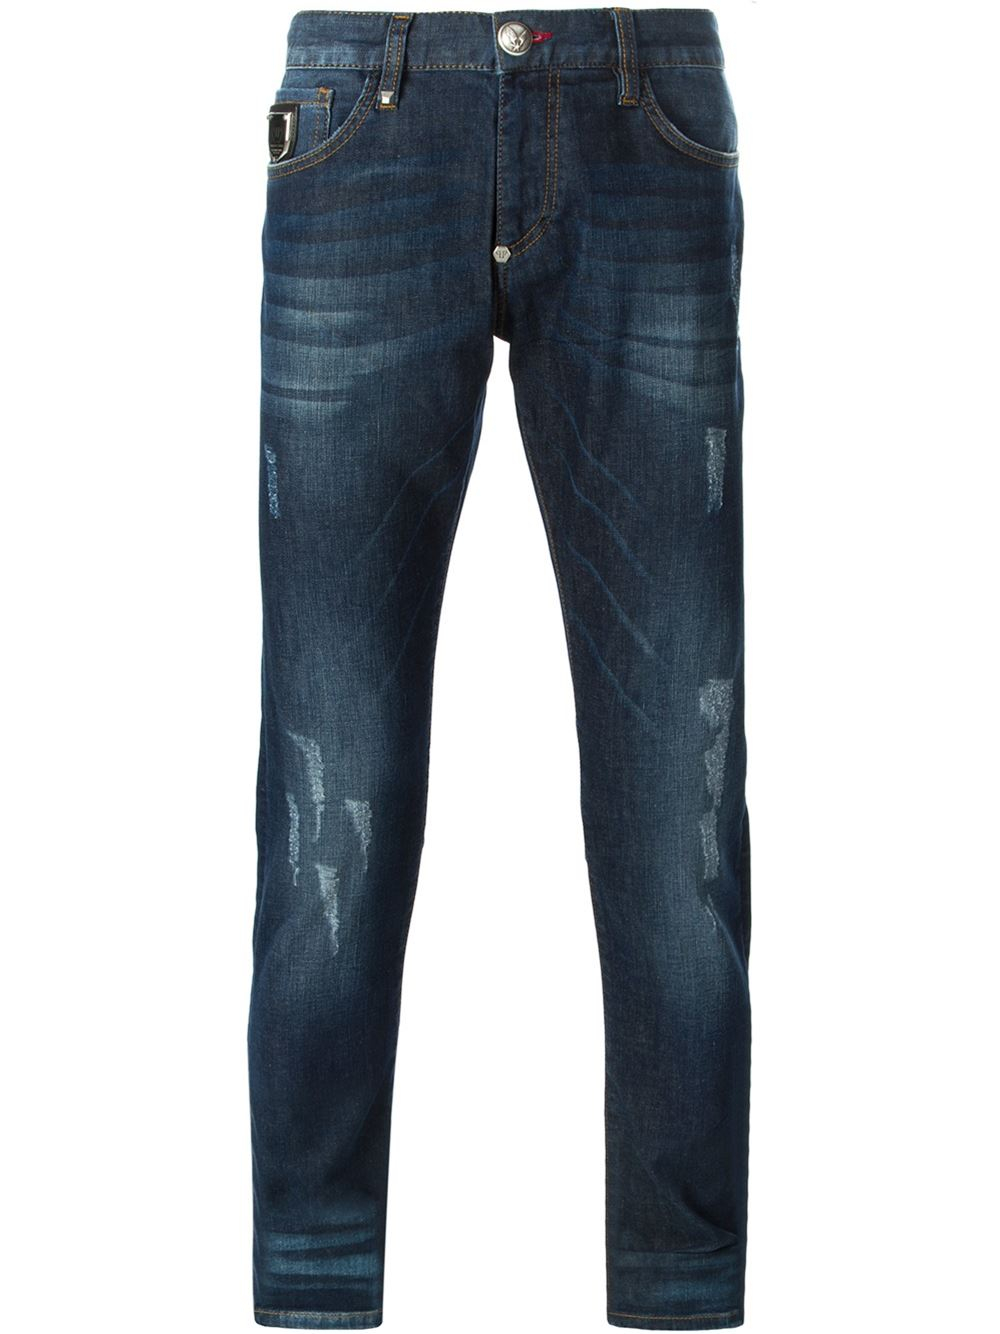 Shop for distressed jeans. The best choice online for distressed jeans is at bierek.tk where shipping is always free to any Zumiez store.